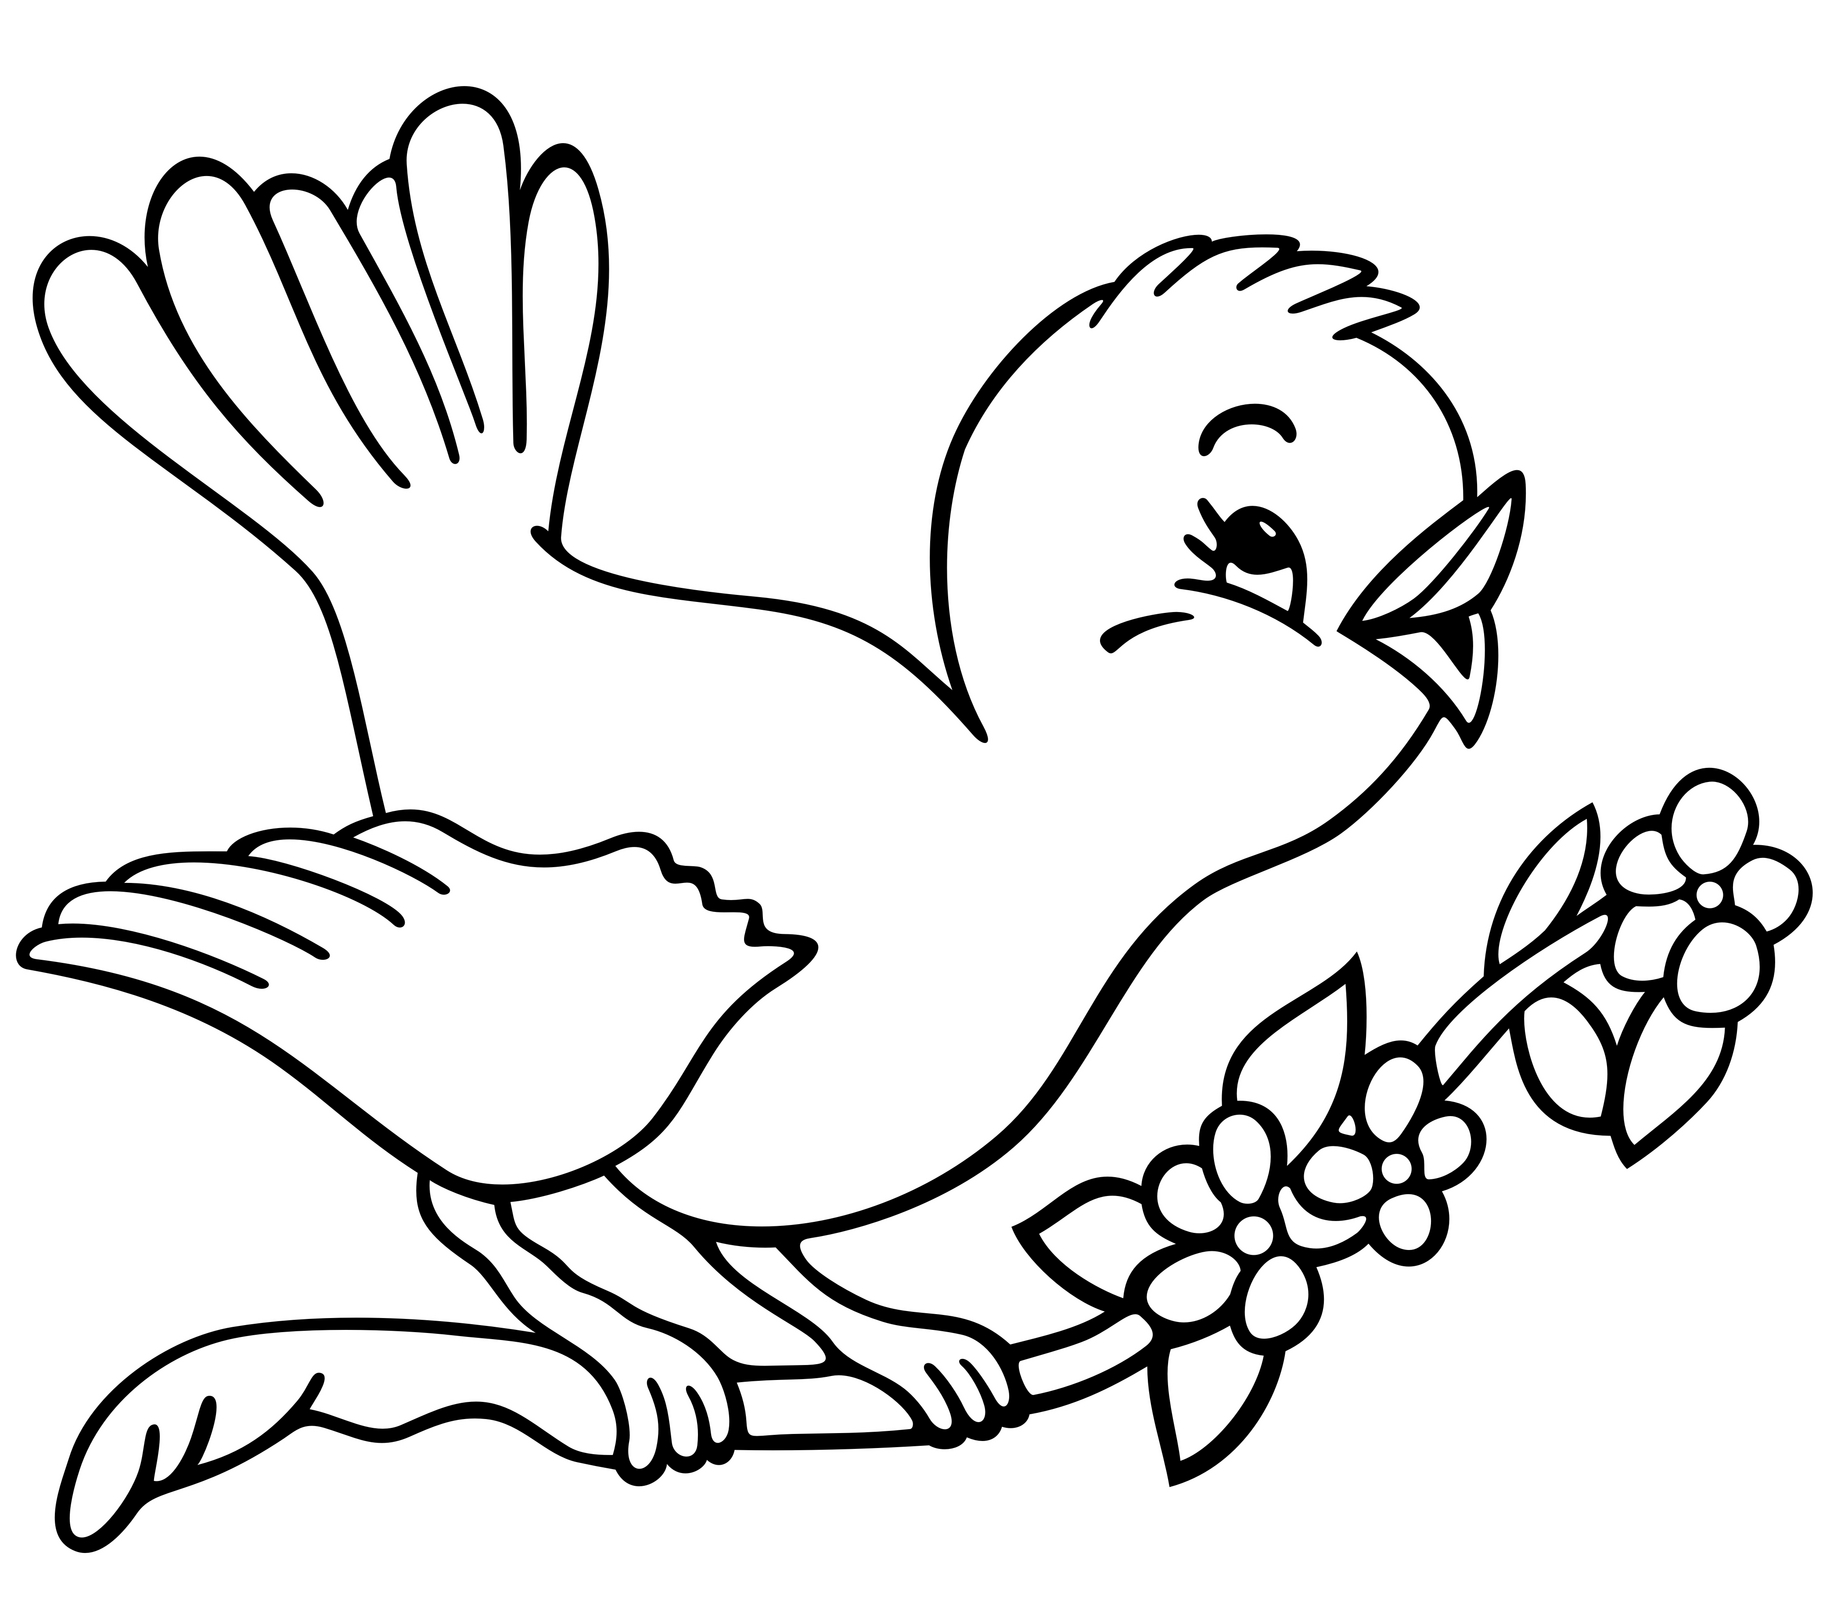 Latest Colouring Pages, Sheets, Pictures & Images for Kids